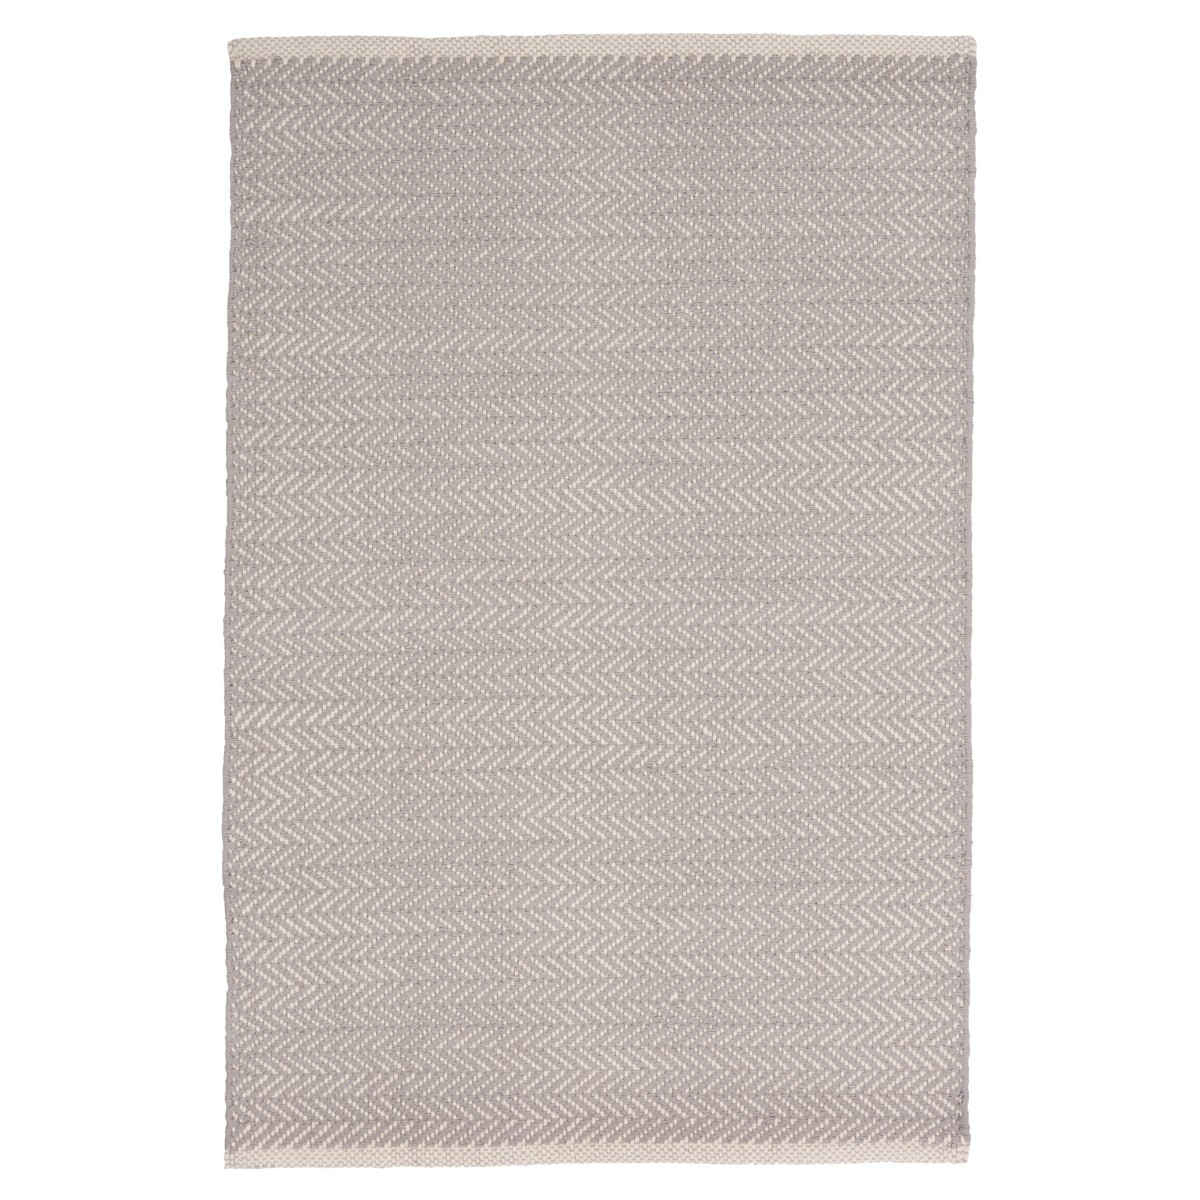 Herringbone Cotton Rug - Dove Grey